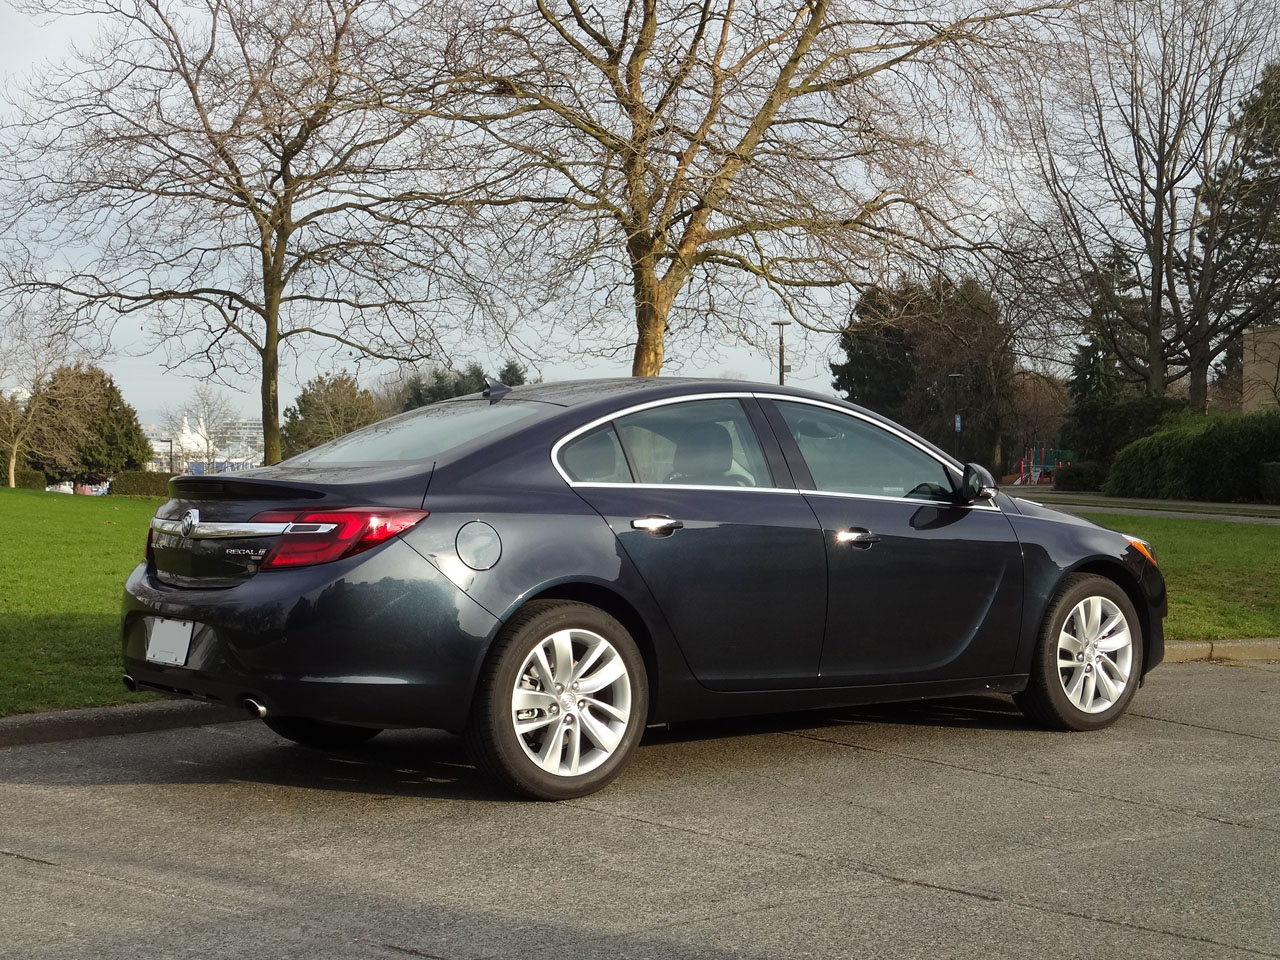 2014 buick regal turbo awd road test review carcostcanada. Black Bedroom Furniture Sets. Home Design Ideas